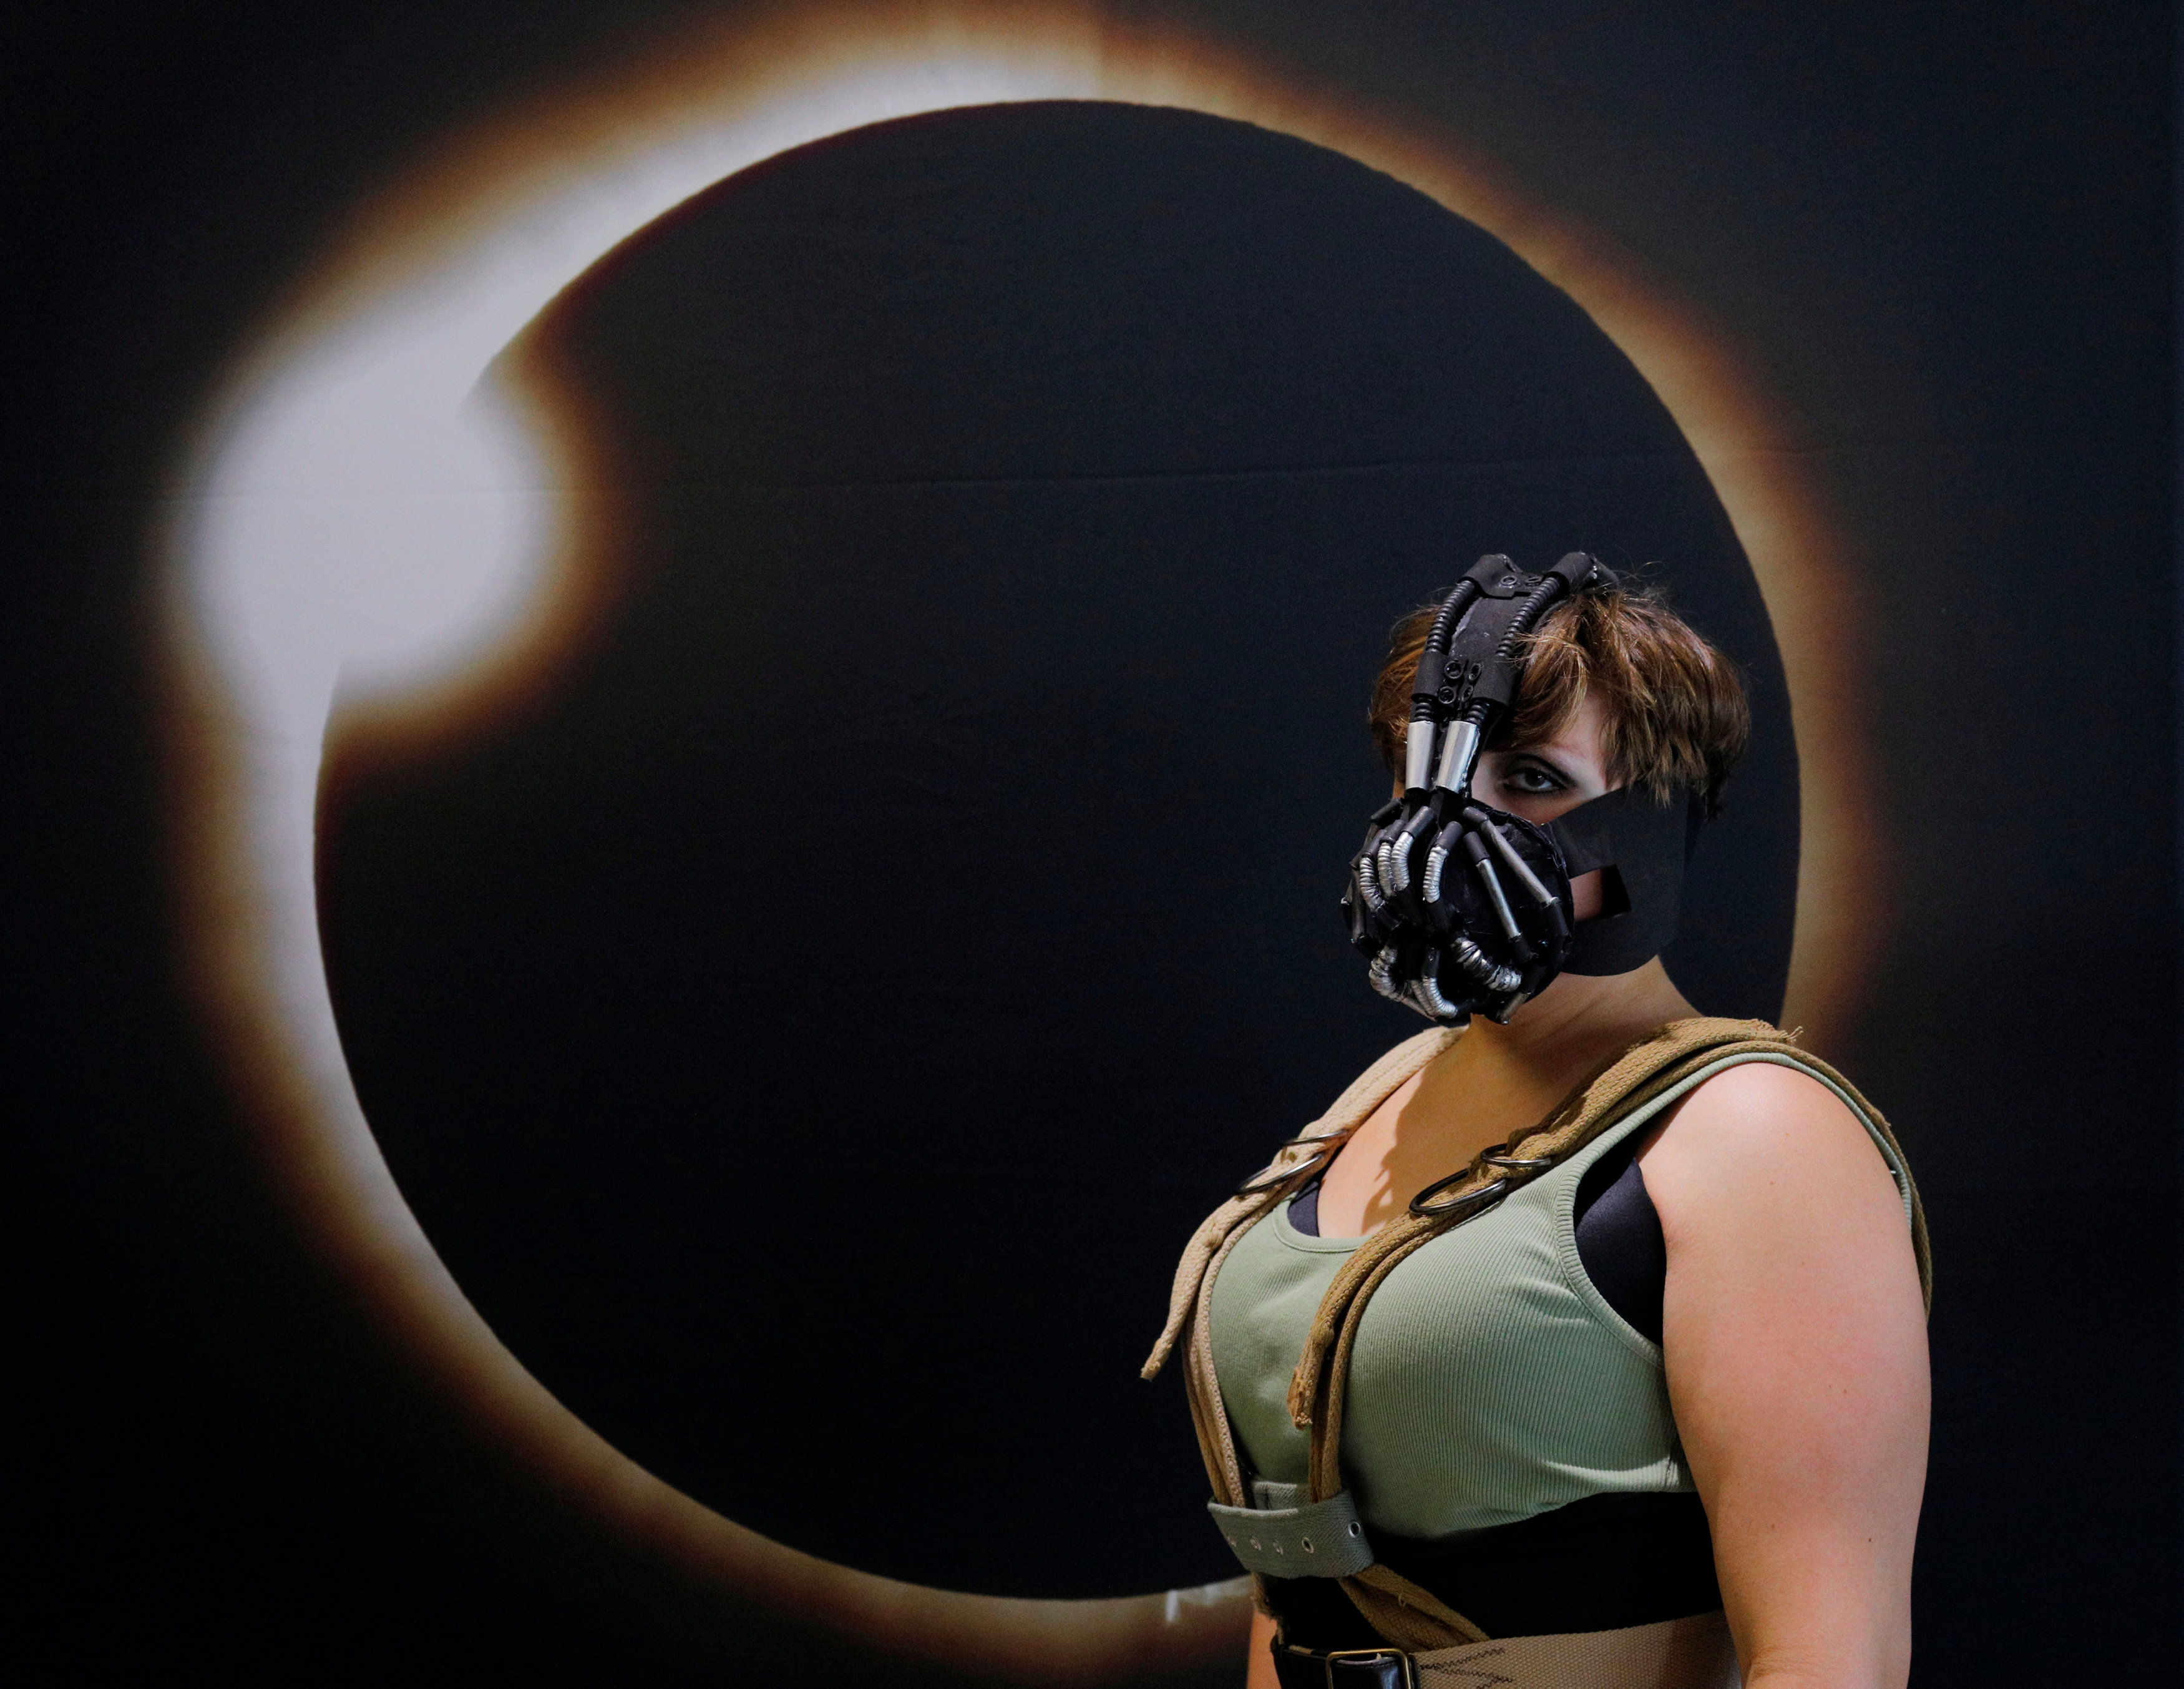 Cassie Gillard, from bay City Michigan and dressed as Lady Bane from the Batman franchise, poses for a photograph in front of an image of a solar eclipse at the Eclipse Comic-Con at Southern Illinois University in Carbondale, Ill., on Aug. 20, 2017 one day before a total solar eclipse in the city.   (REUTERS/Brian Snyder)